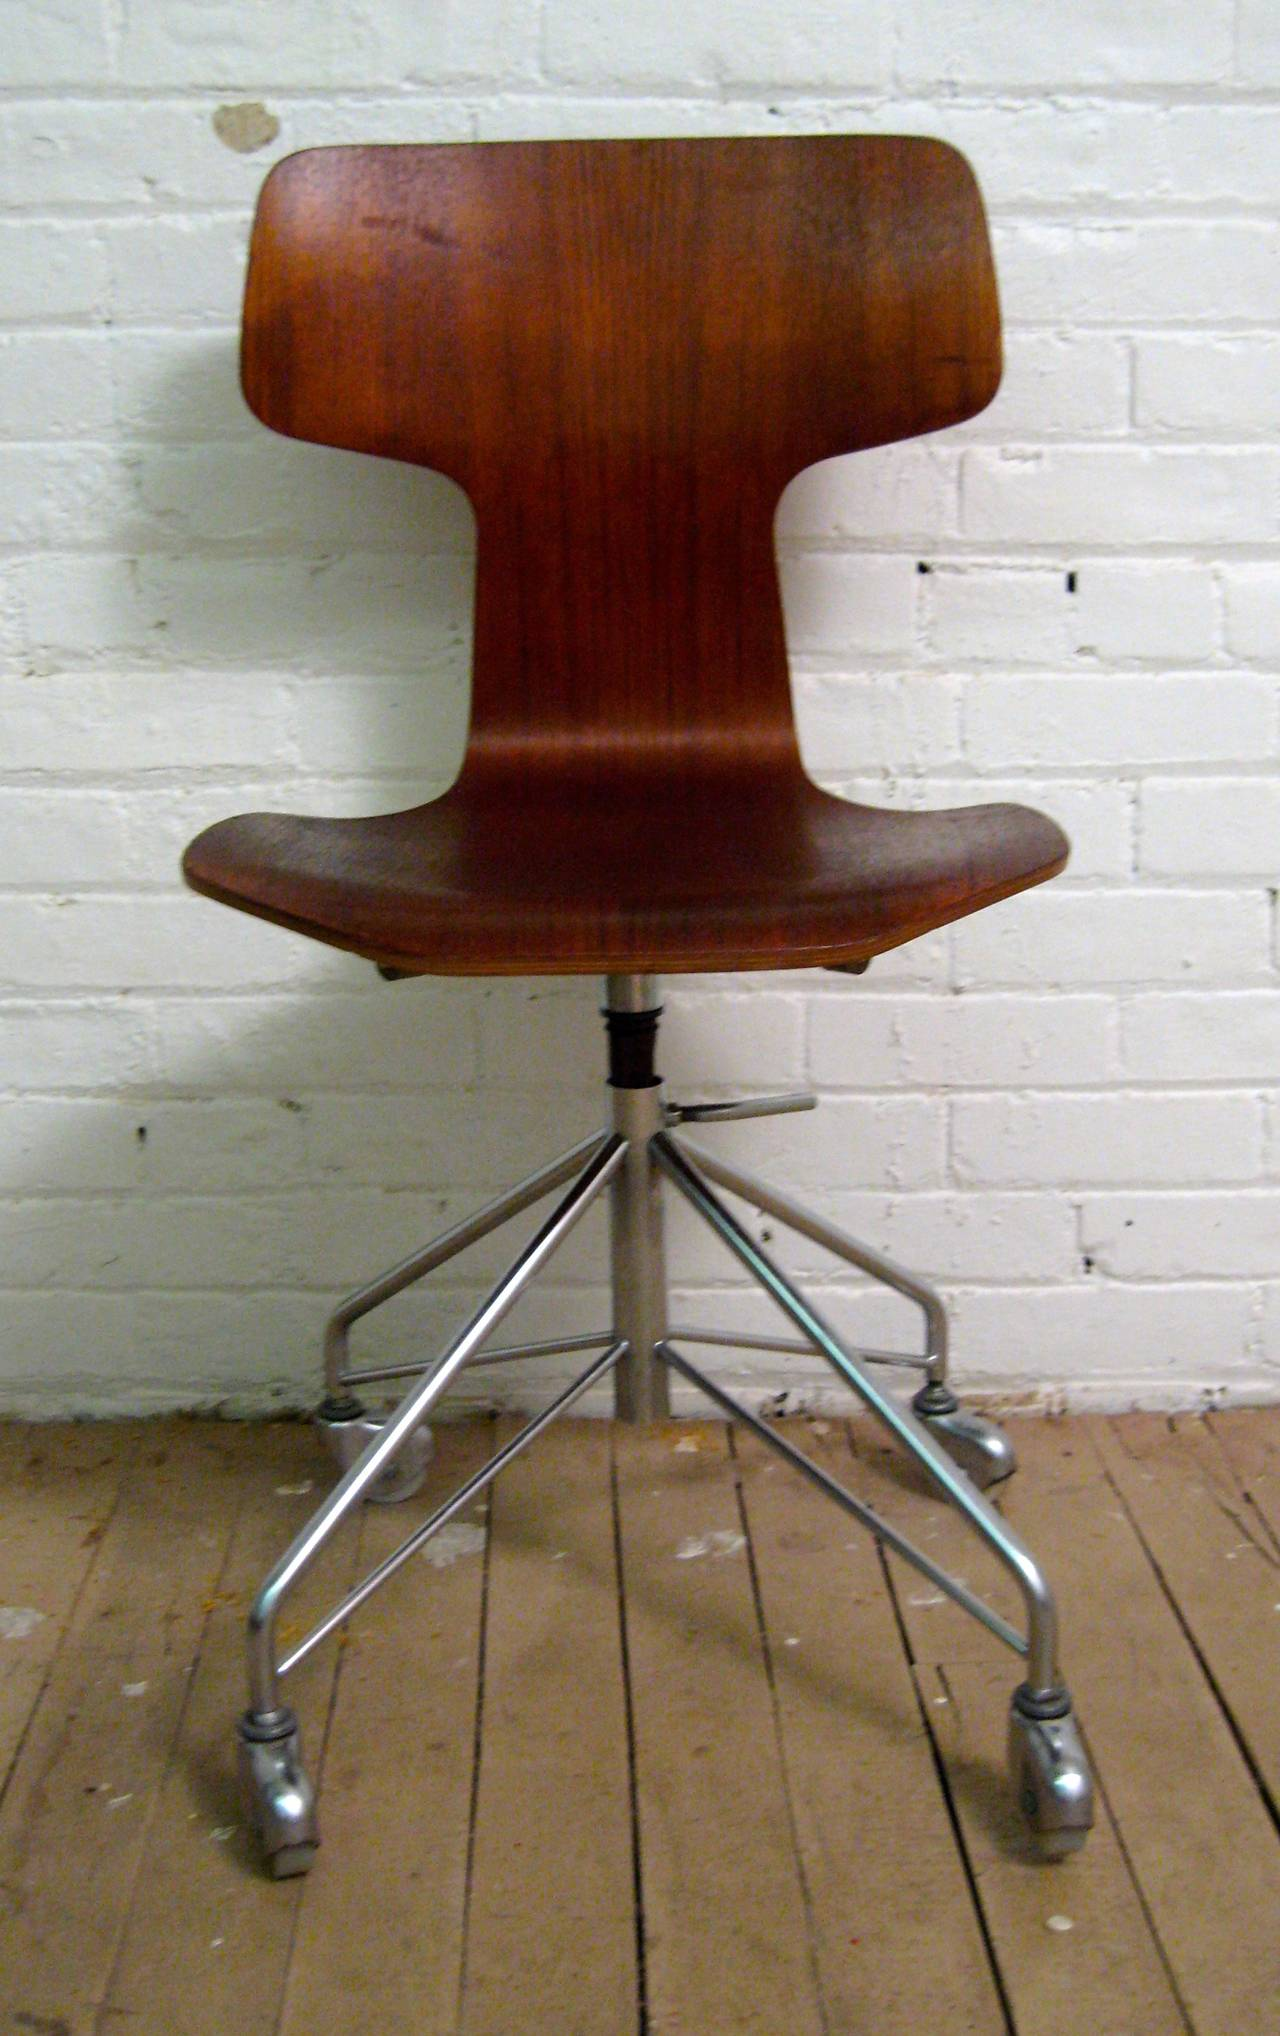 Arne jacobsen for fritz hansen teak desk chair model 3103 for Arne jacobsen chaise